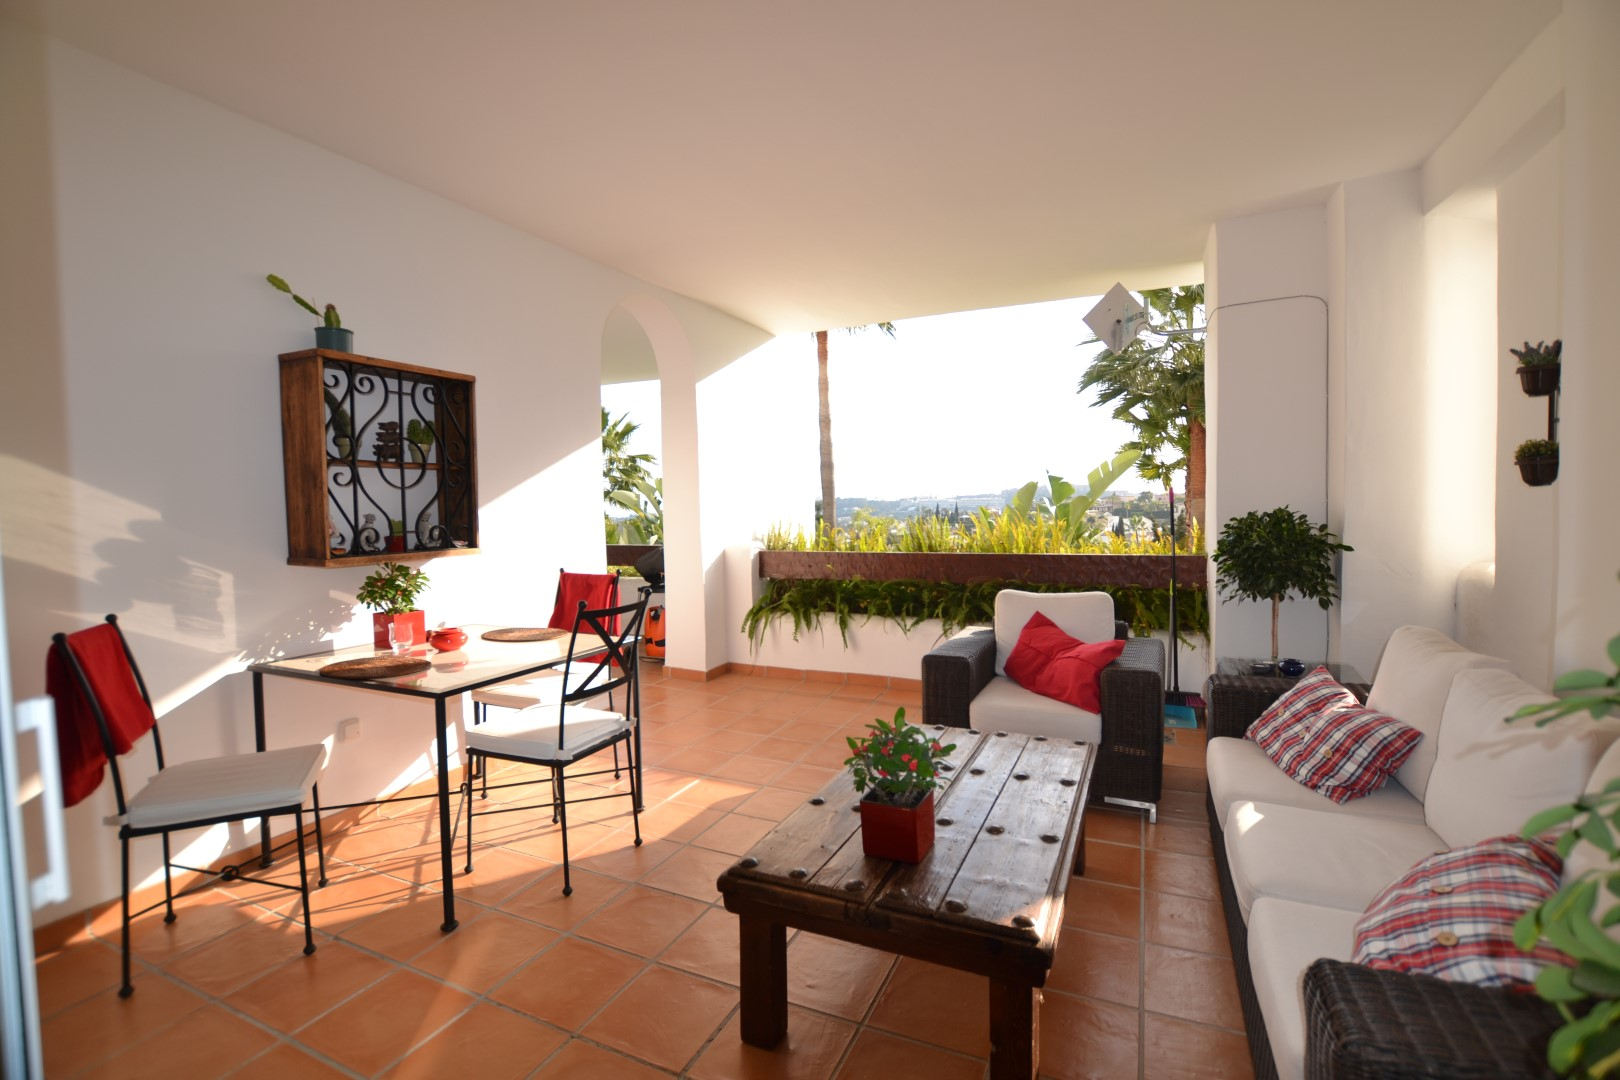 Apartment For Sale in Las Tortugas